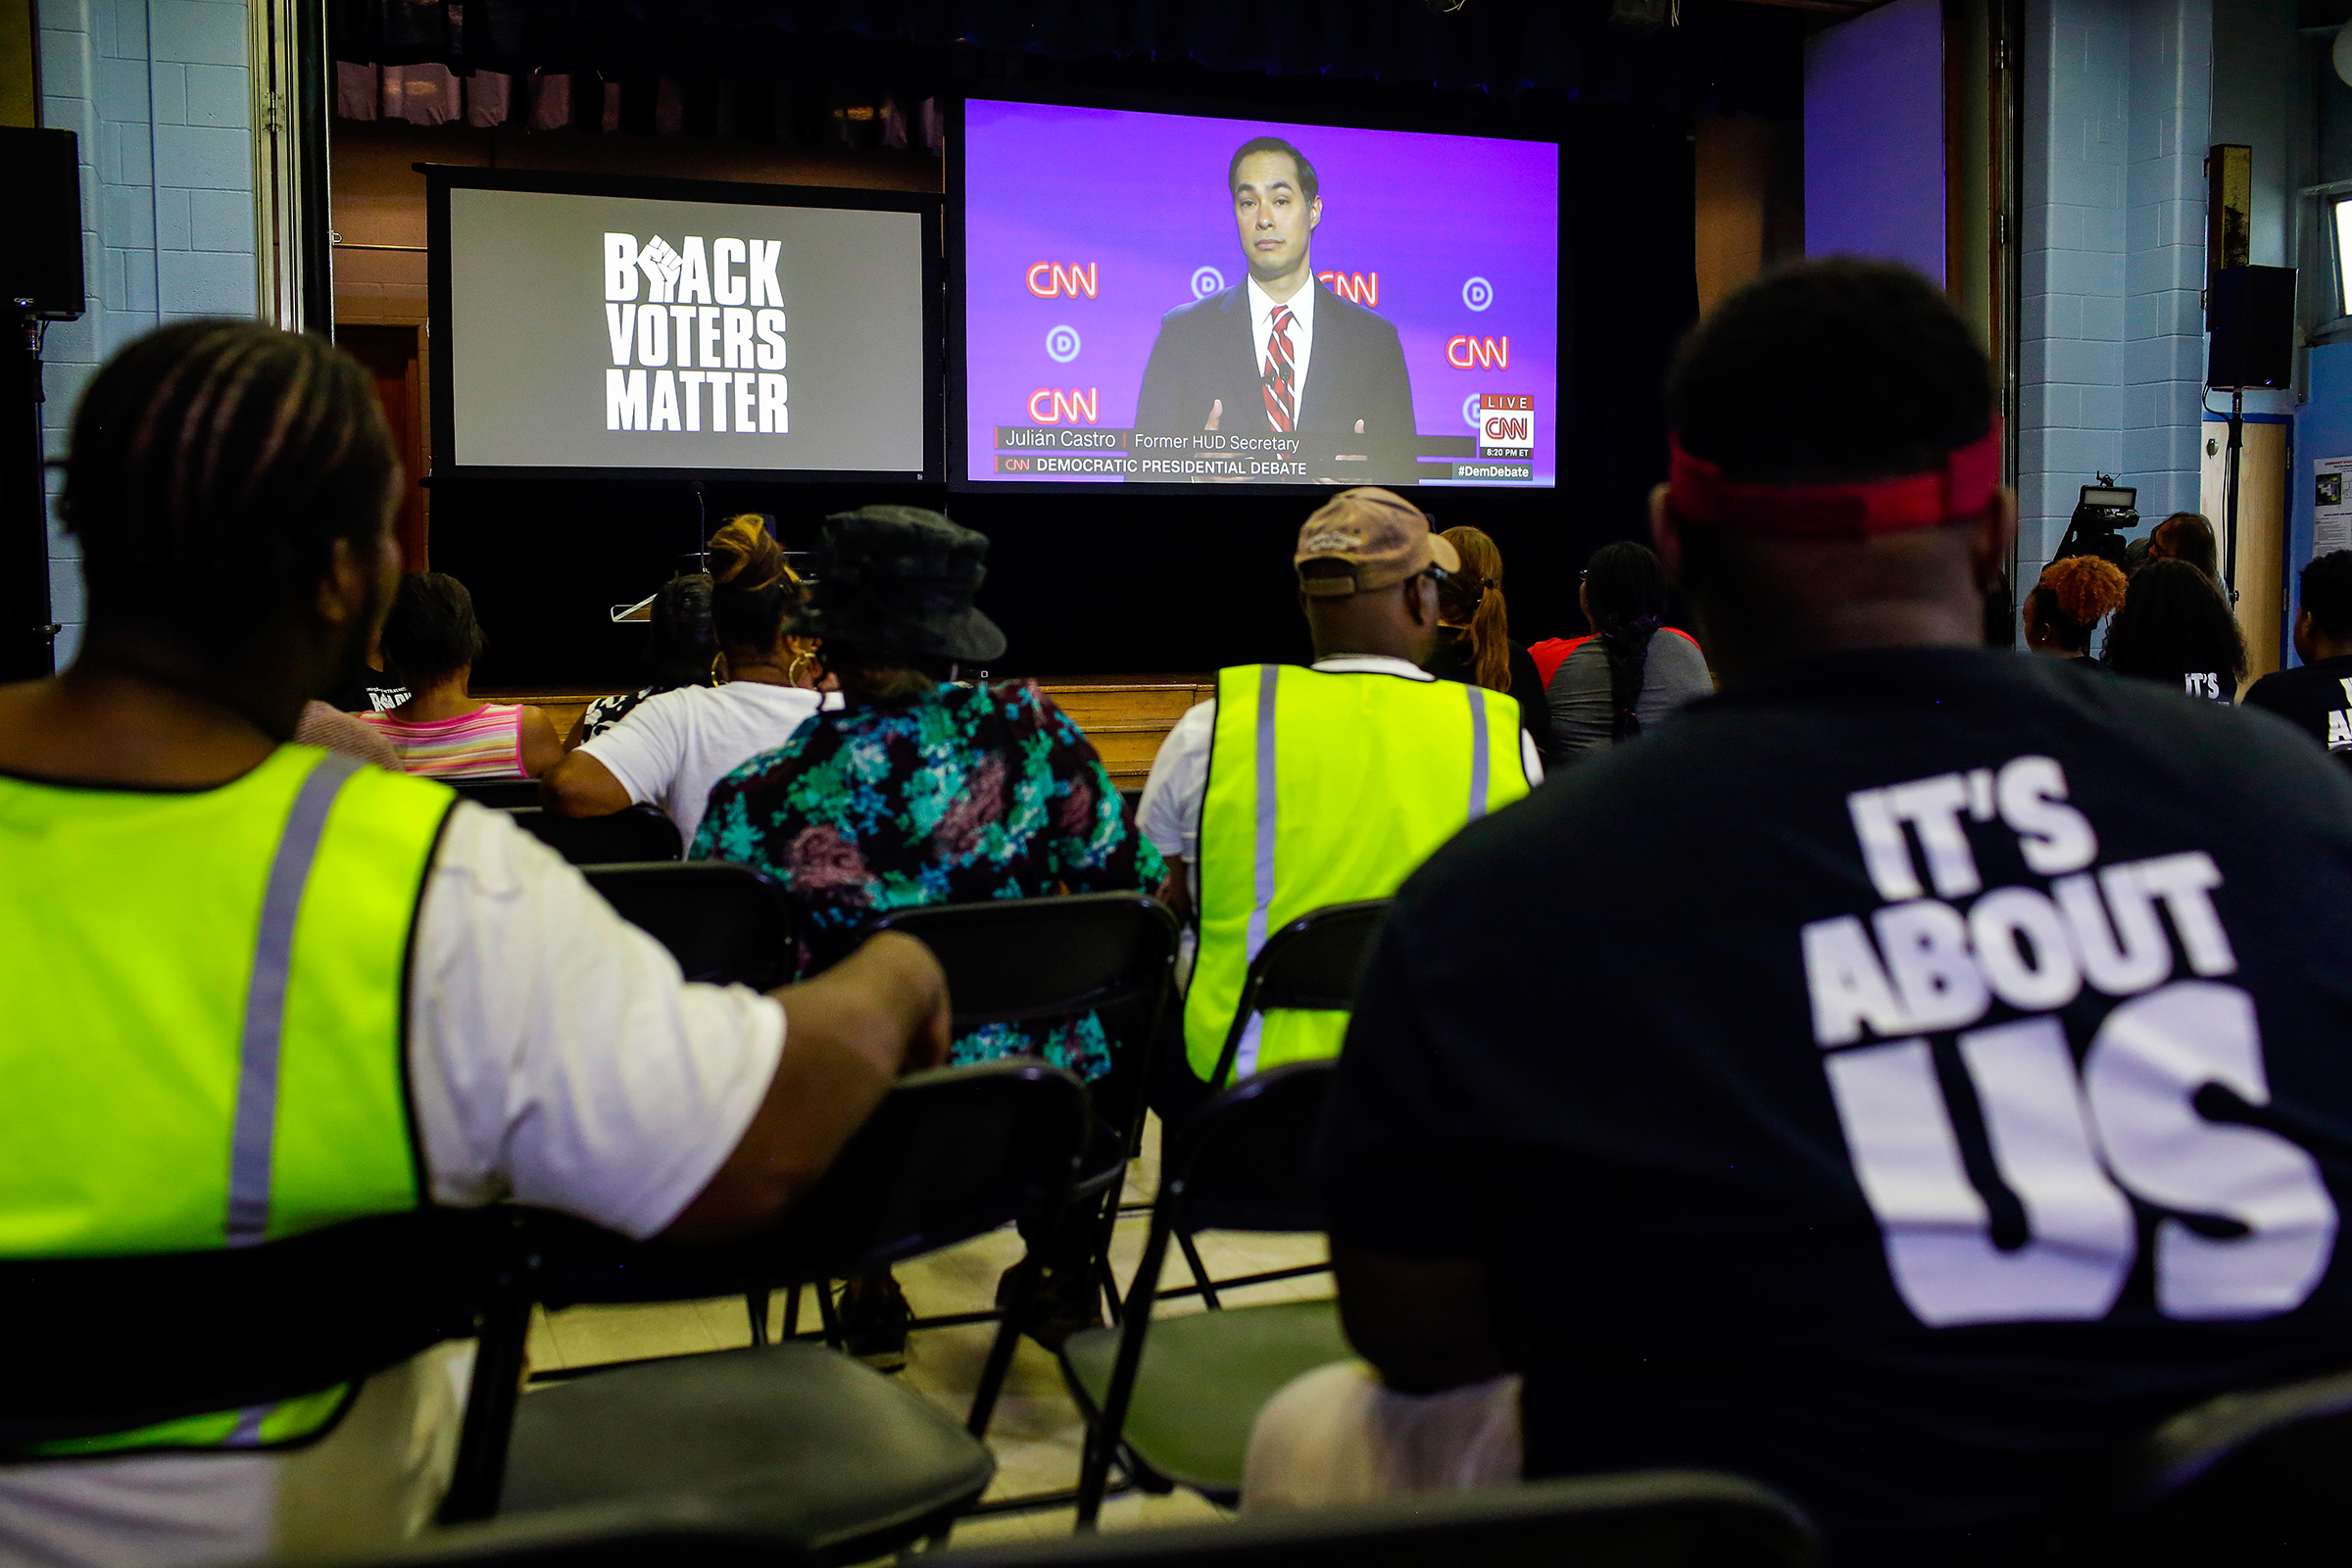 Attendees and residents of Flint watch the Presidential Debate during a watch party organized by Black Voters Matter at the Flint Development Center on July 31 in Flint, Michigan.